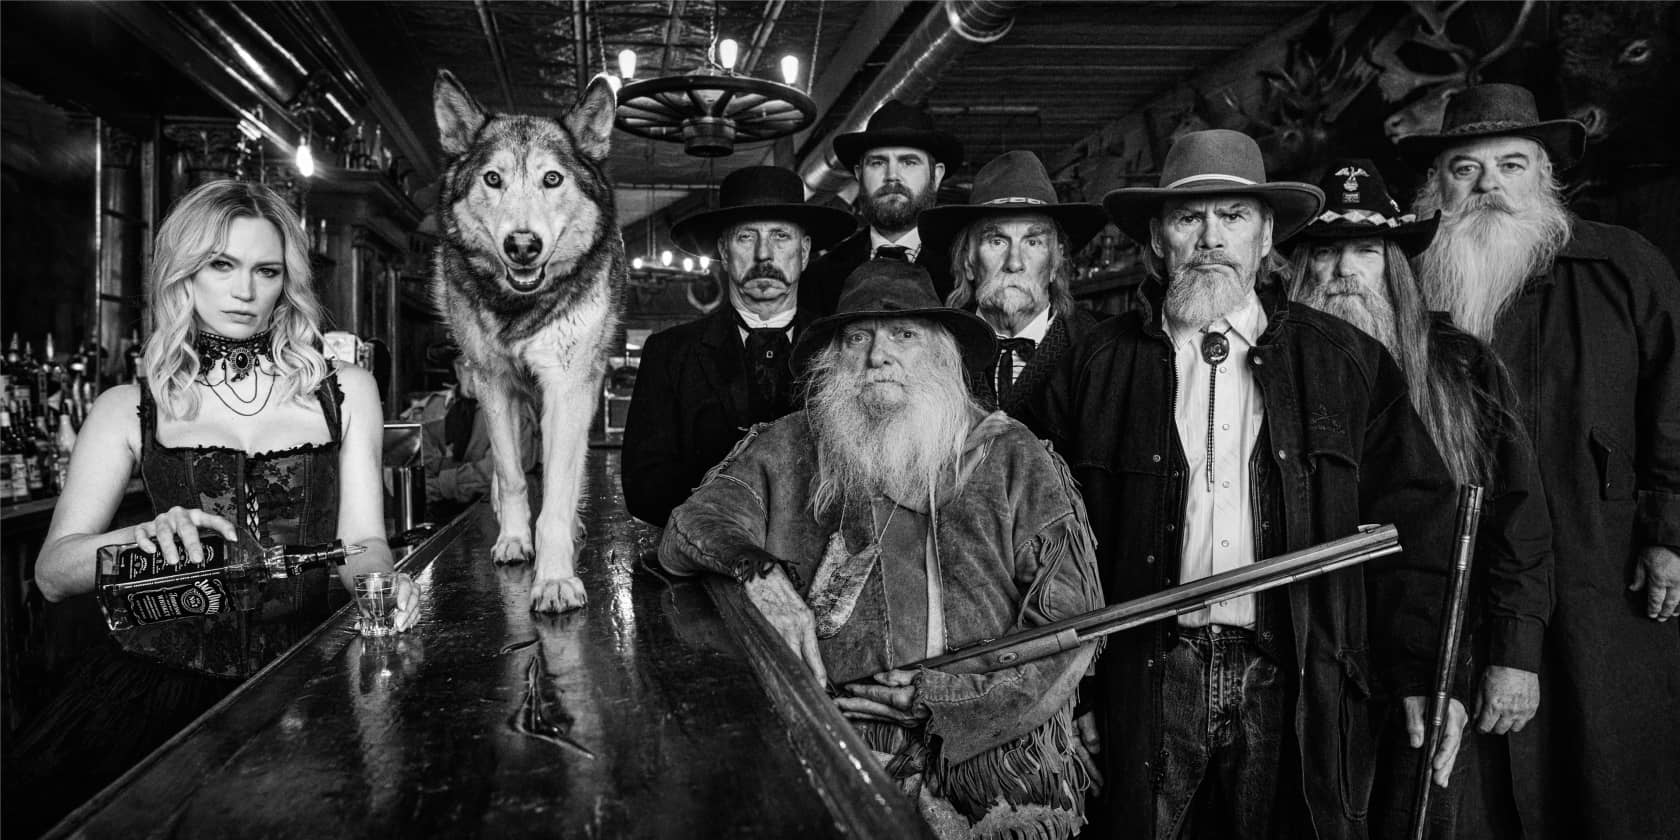 David Yarrow, More Usual Suspects, 2021